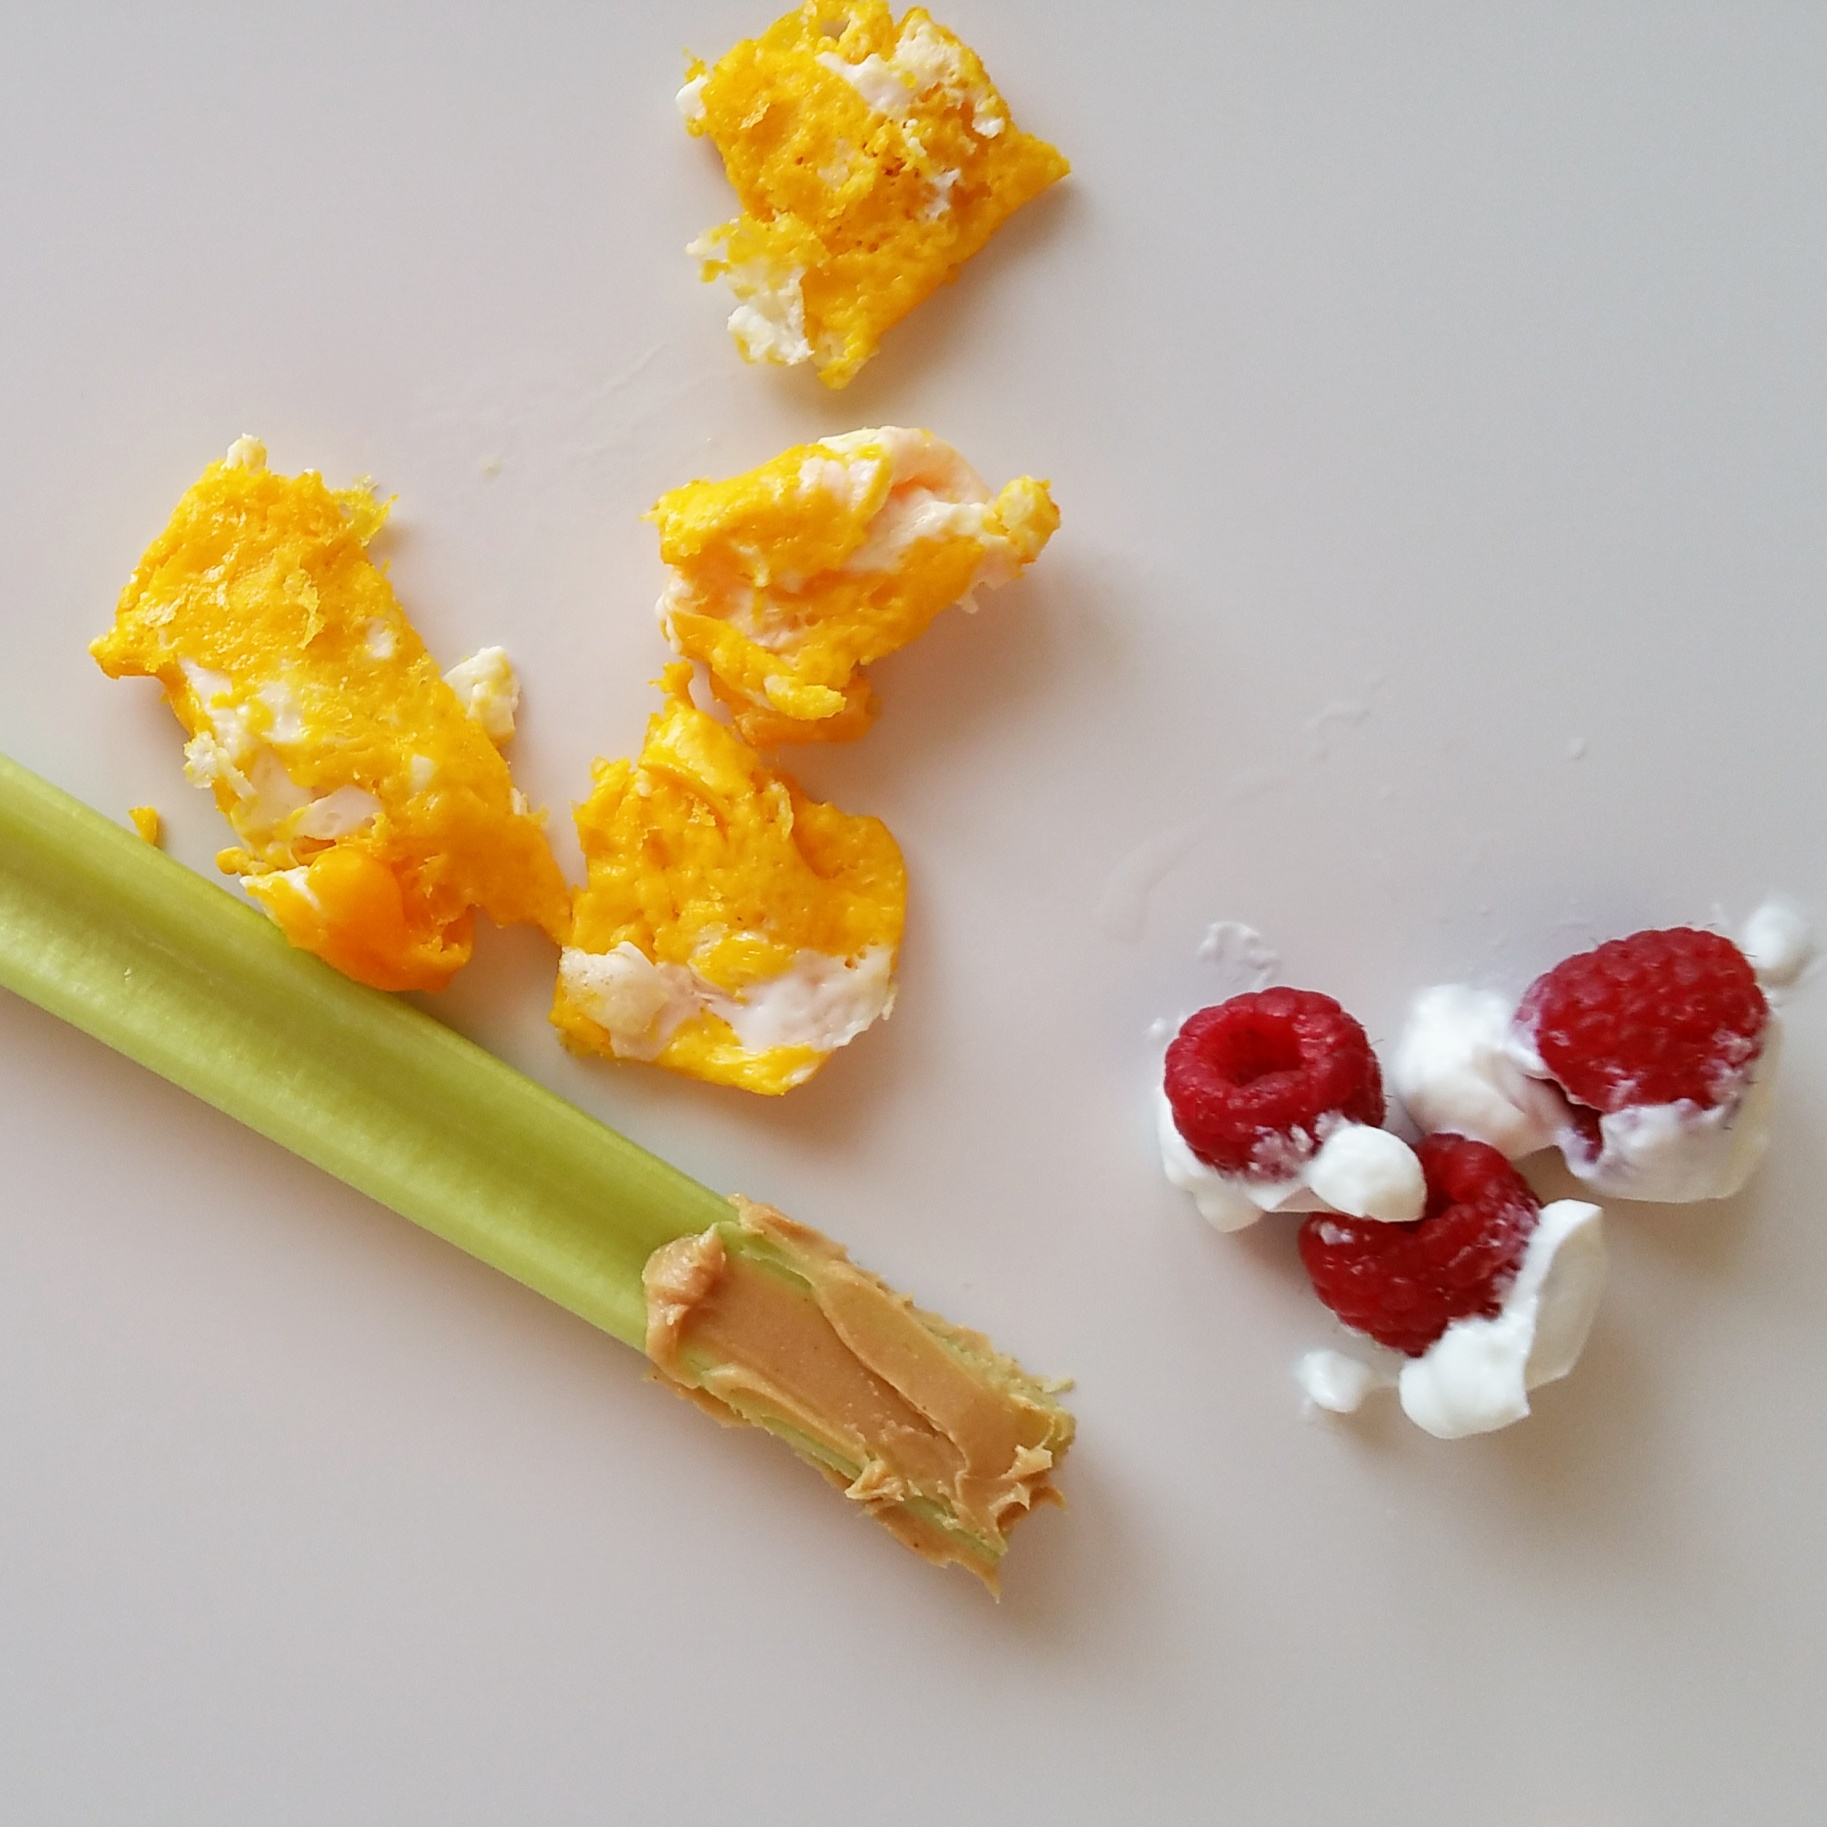 celery with peanut butter (avoid thecelery if your baby has a tooth), egg yolks, raspberries with Greek yogurt